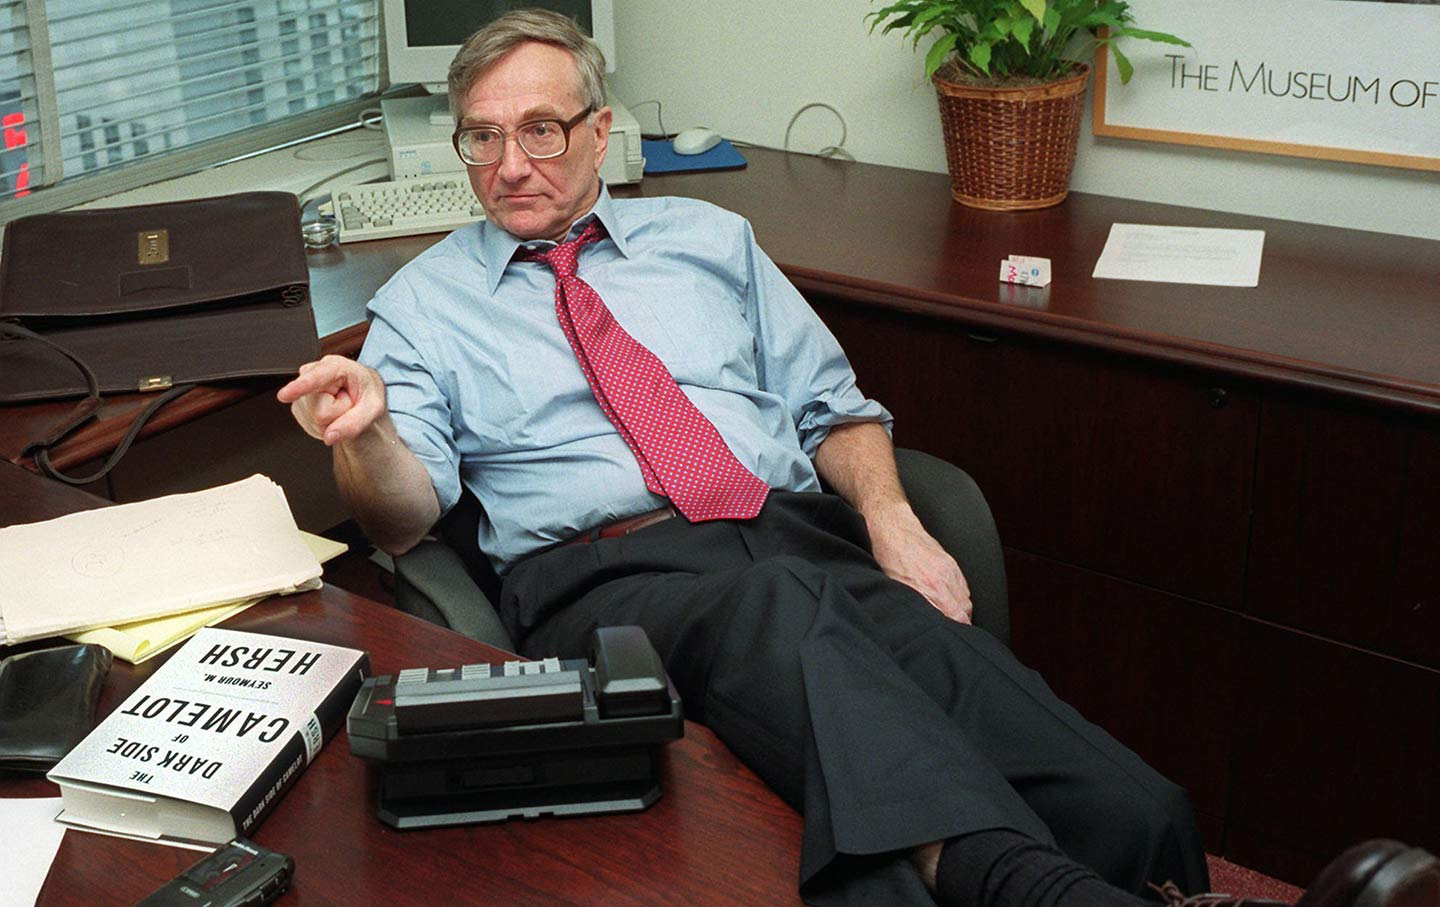 Seymour Hersh with The Dark Side of Camelot